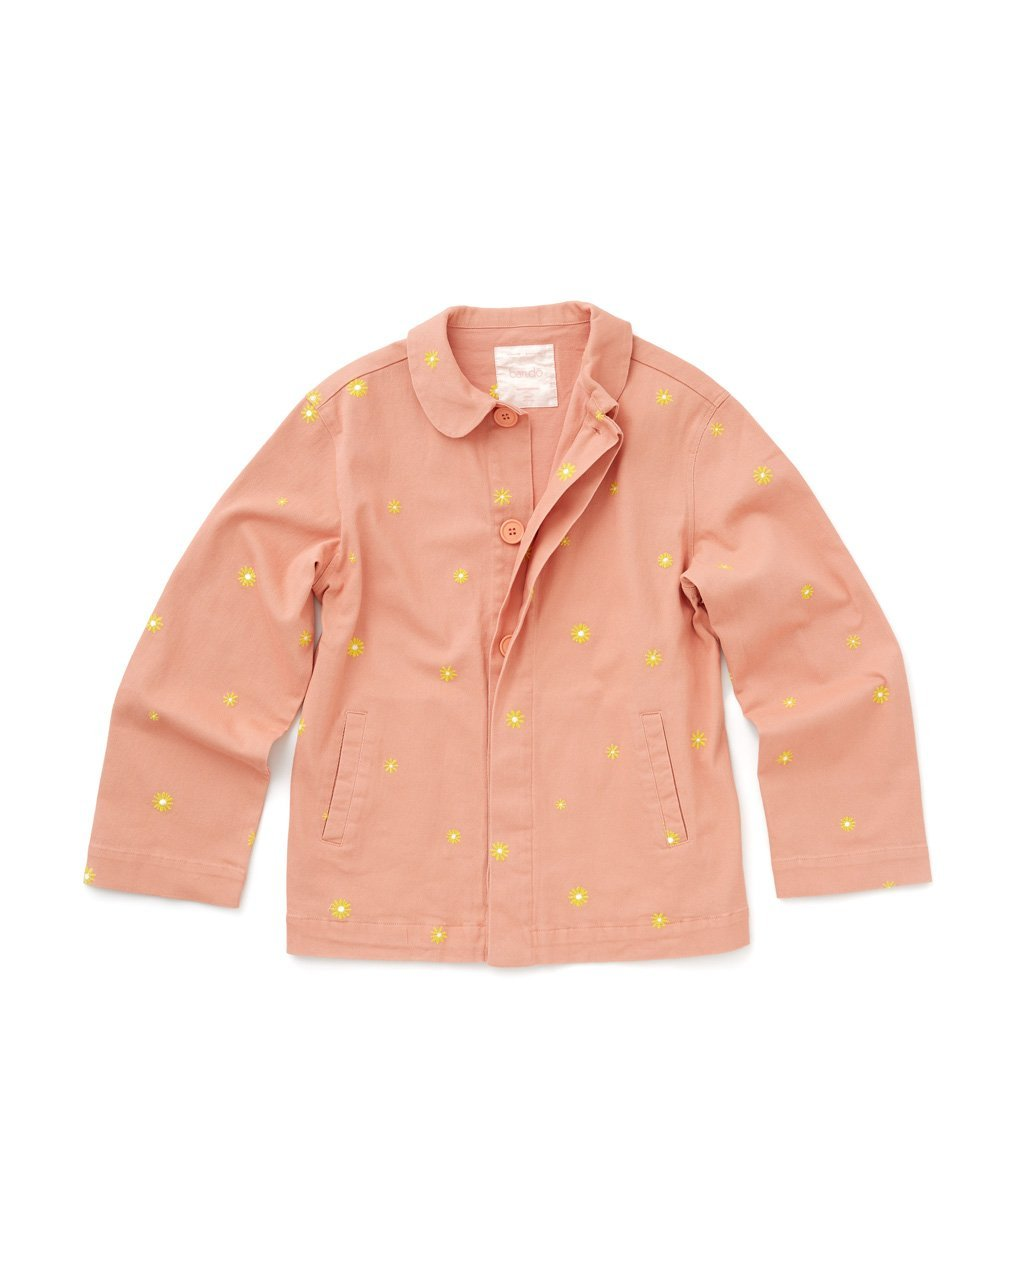 salmon colored work jacket with yellow daisy pattern all over